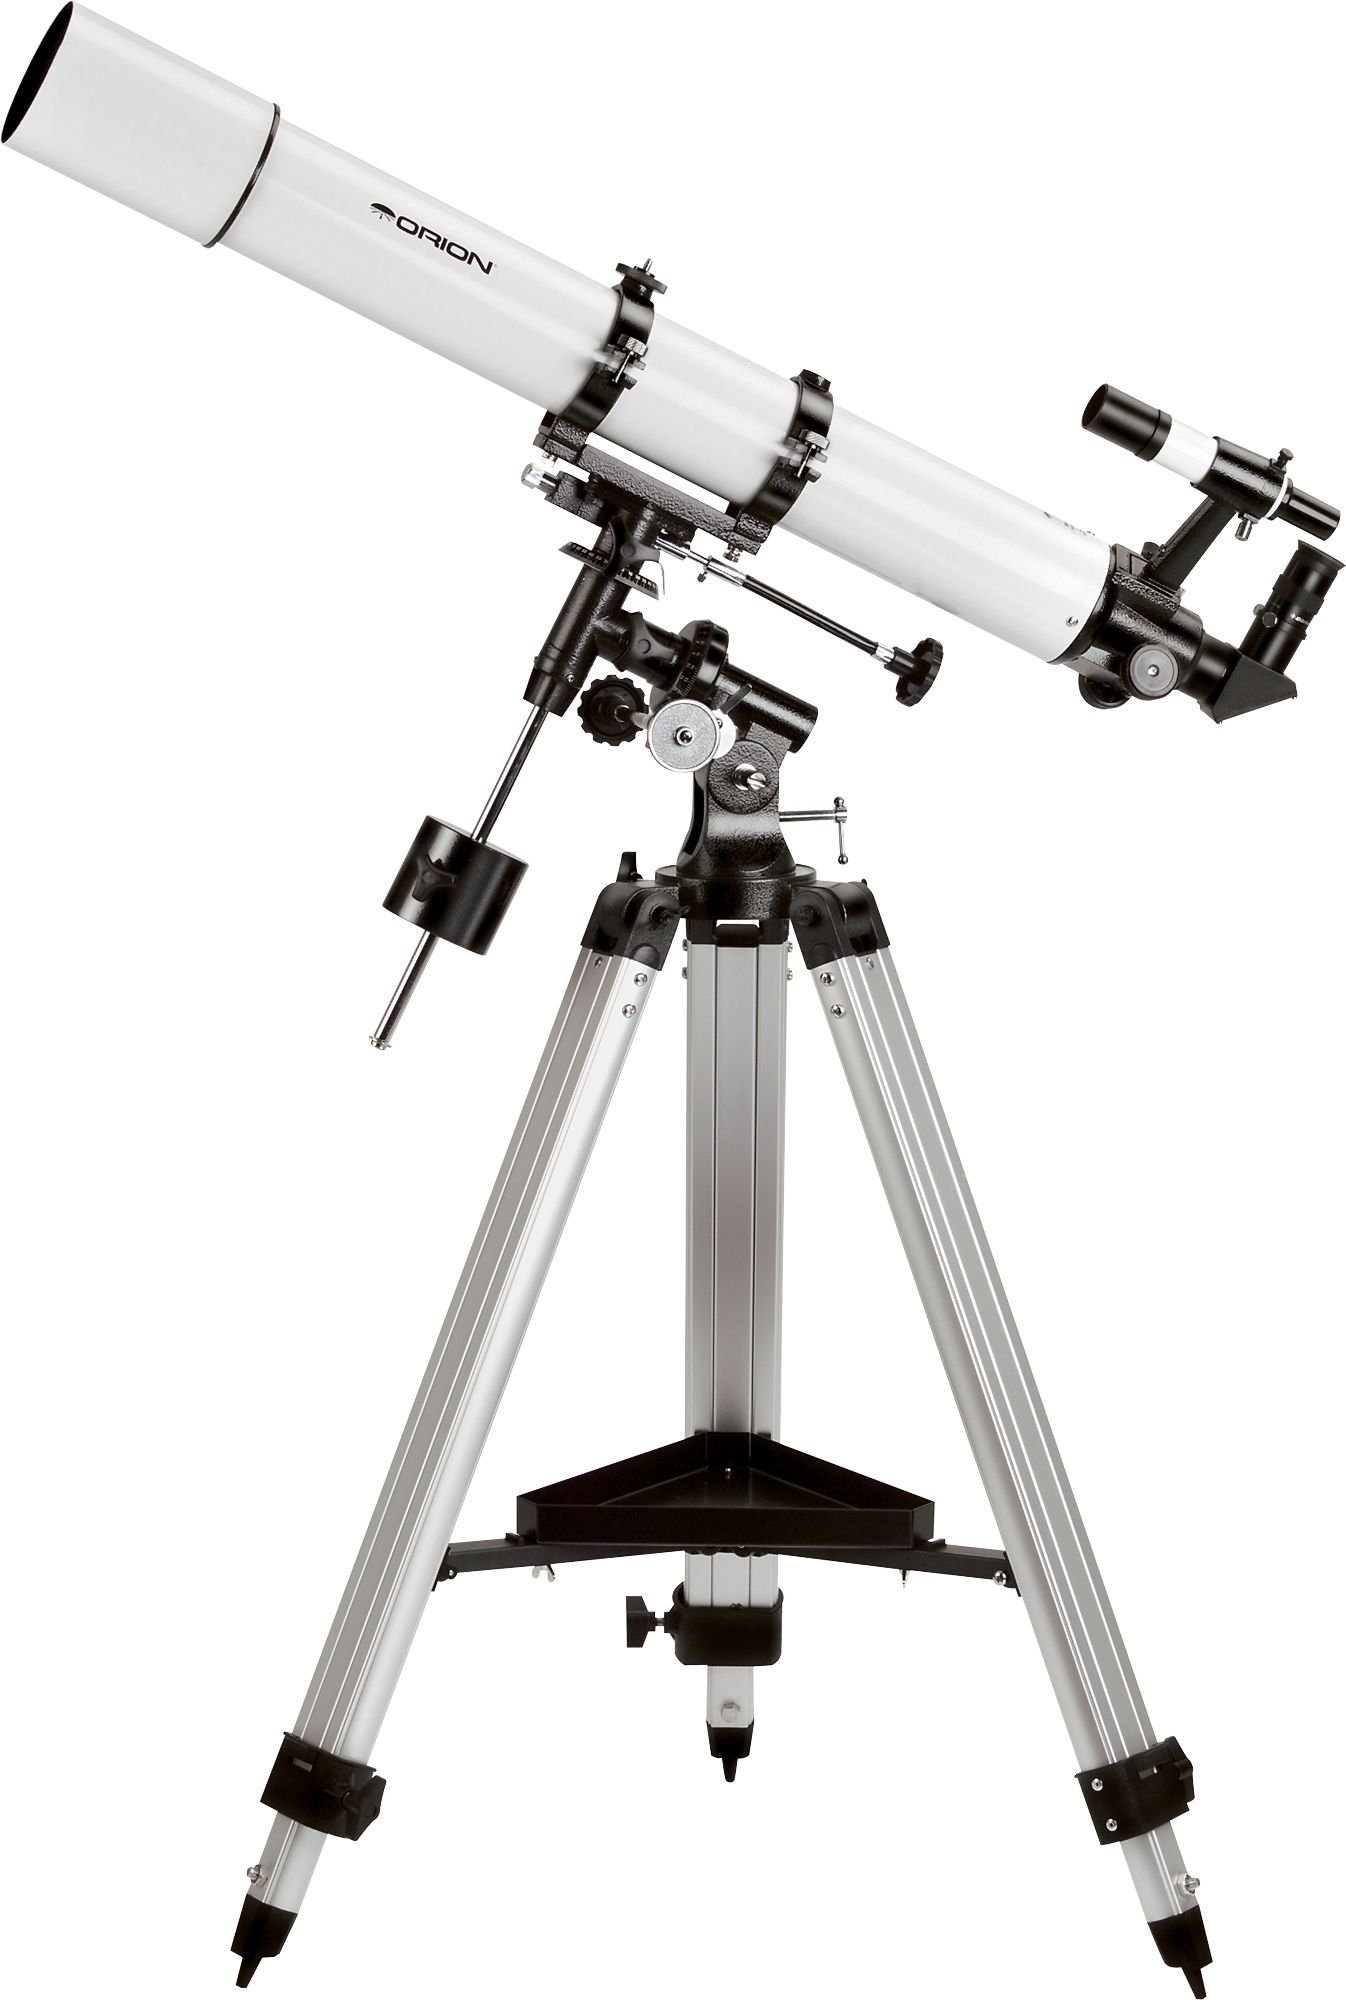 Orion 9024 AstroView 90mm Equatorial Refractor Telescope by Orion